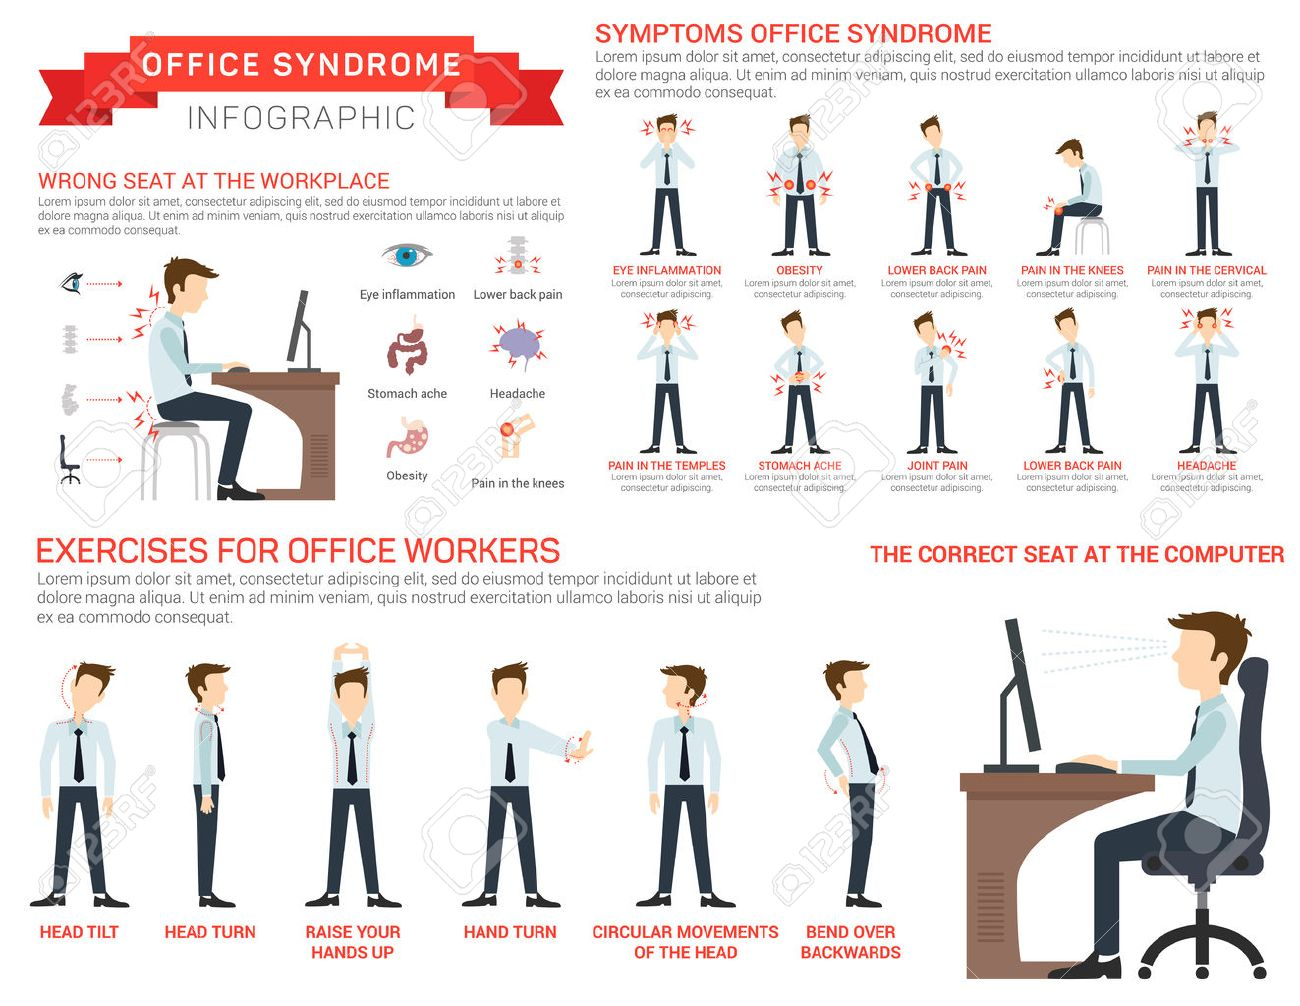 Vector flat illustration for office syndrome. Eyes inflammation, obesity, stomach ache, knees pain, headache, hands pain, lower back pain. Wrong sitting in the workplace. - 58703743